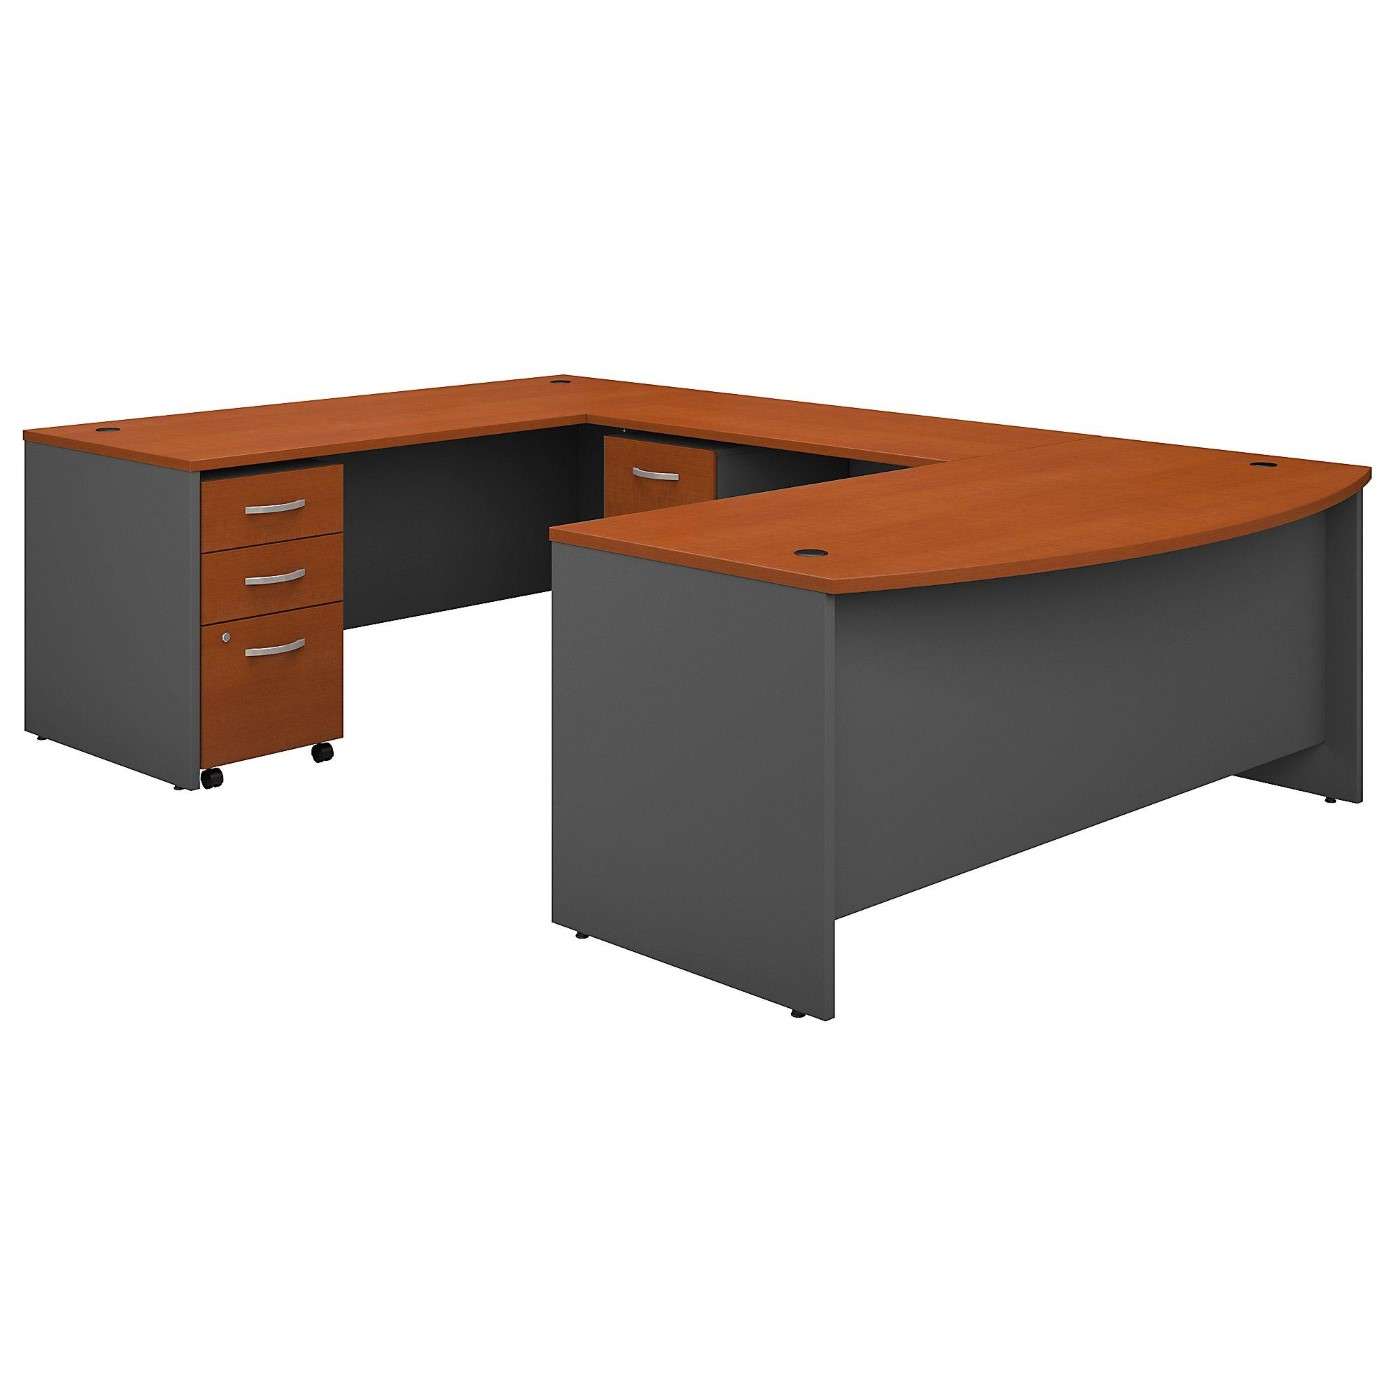 BUSH BUSINESS FURNITURE SERIES C 72W X 36D BOW FRONT U SHAPED DESK WITH MOBILE FILE CABINETS. FREE SHIPPING  VIDEO BELOW.